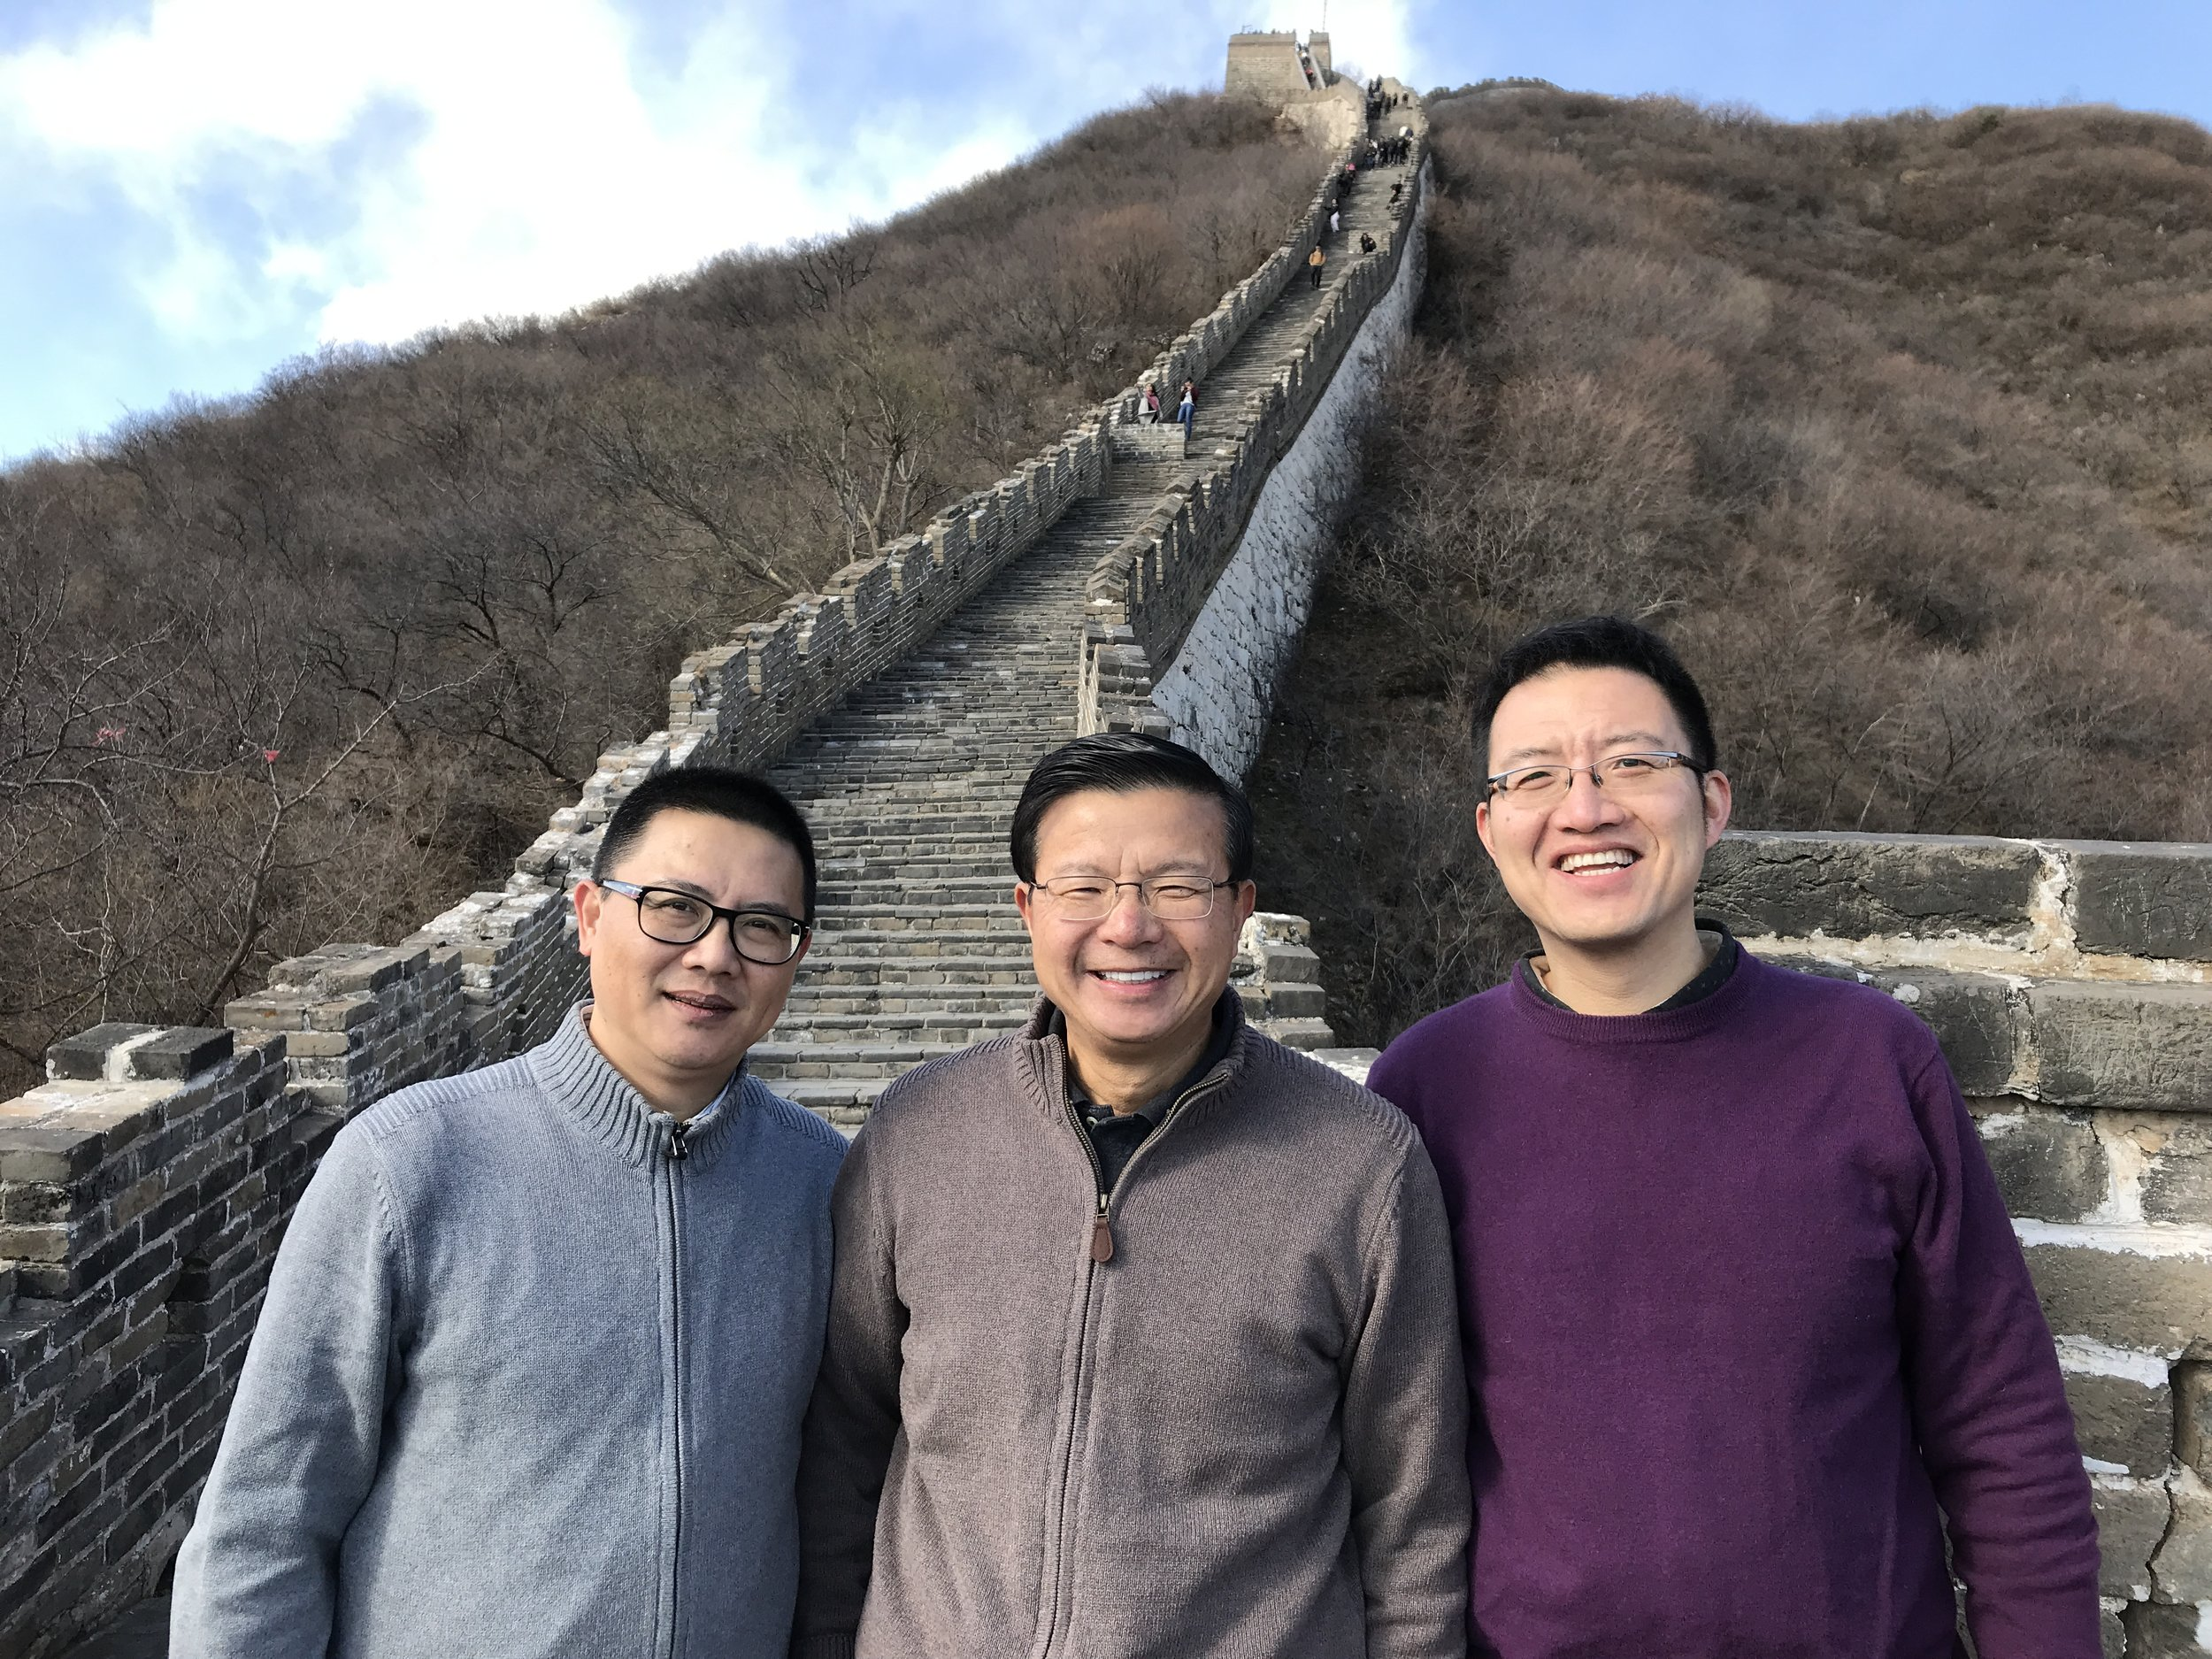 Louie Lu, with Mr. Sun, Yangtze Business Manager (China), and Mr. Lou, Yangtze Quality Control Manager (China) at the Great Wall in Beijing. The Yangtze team has been working together for more than 20 years.